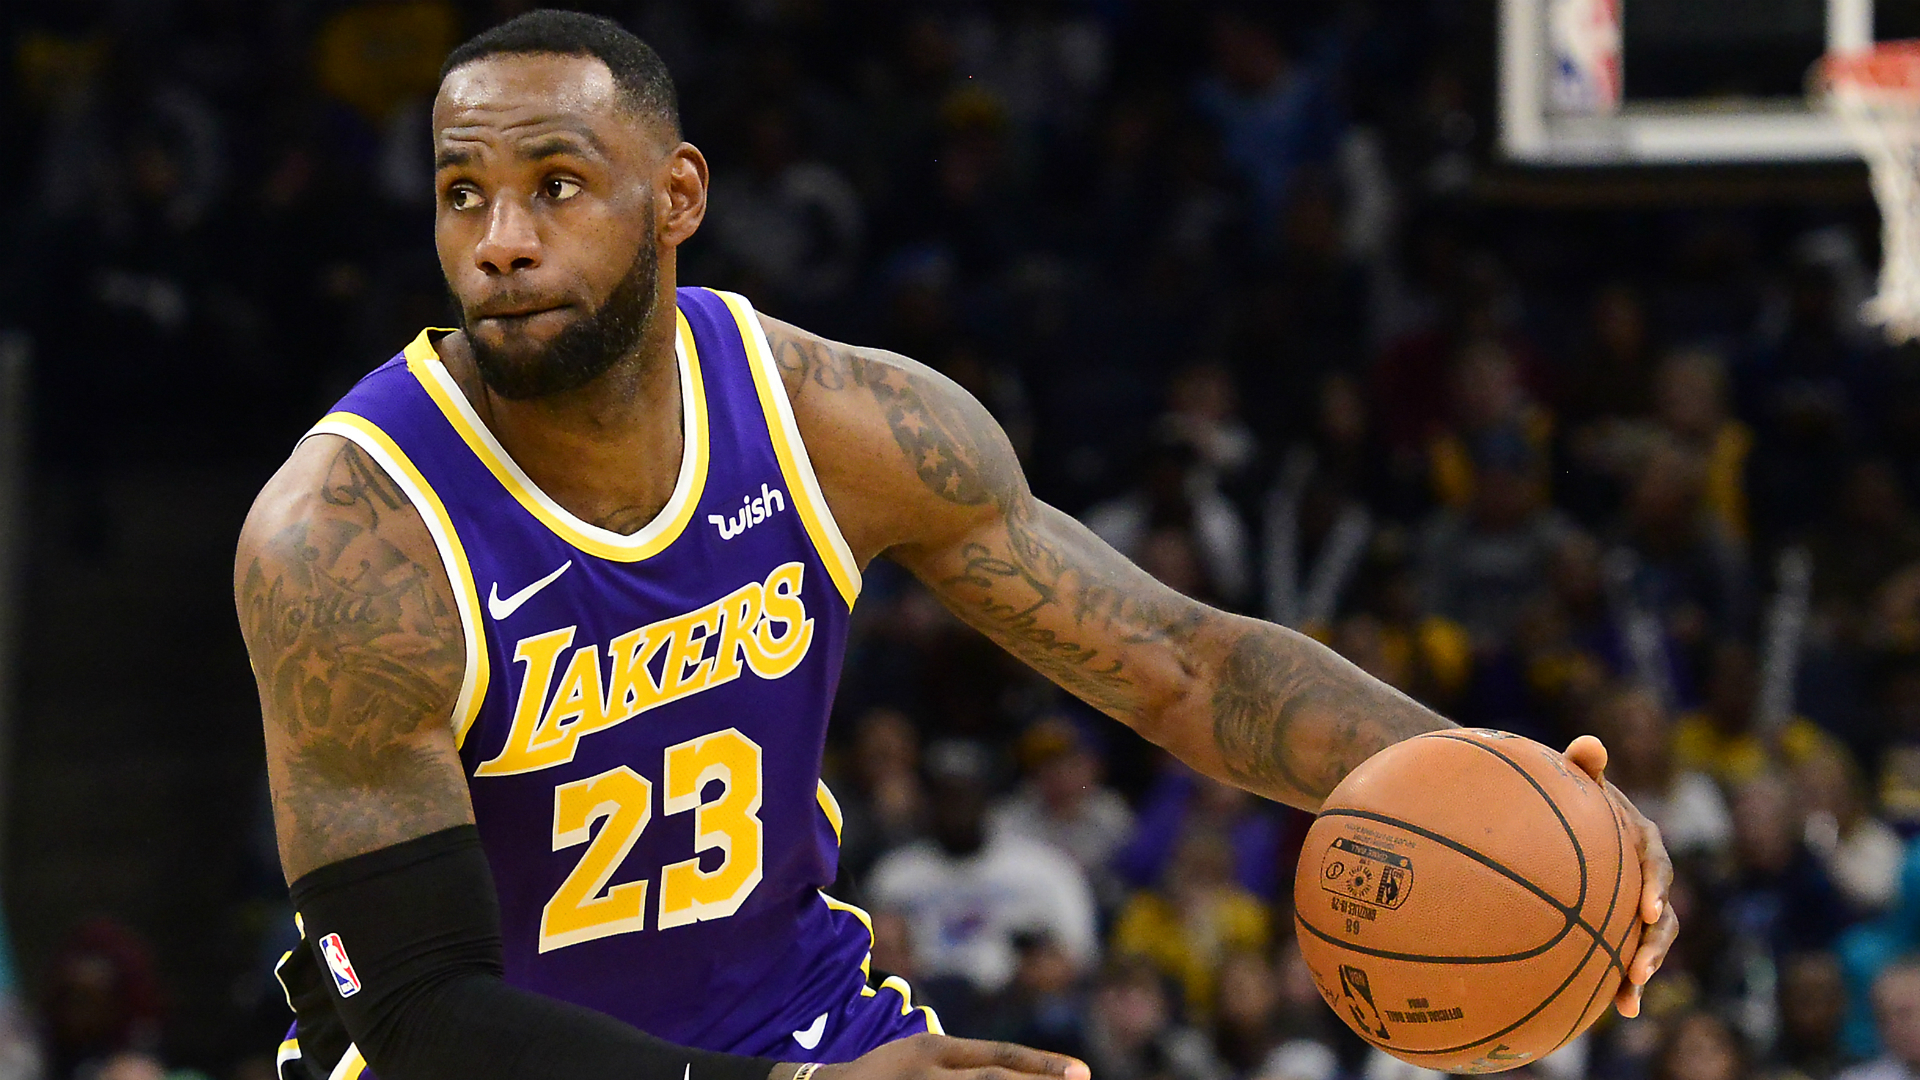 LeBron's Lakers snap skid, Jazz upstage Clippers